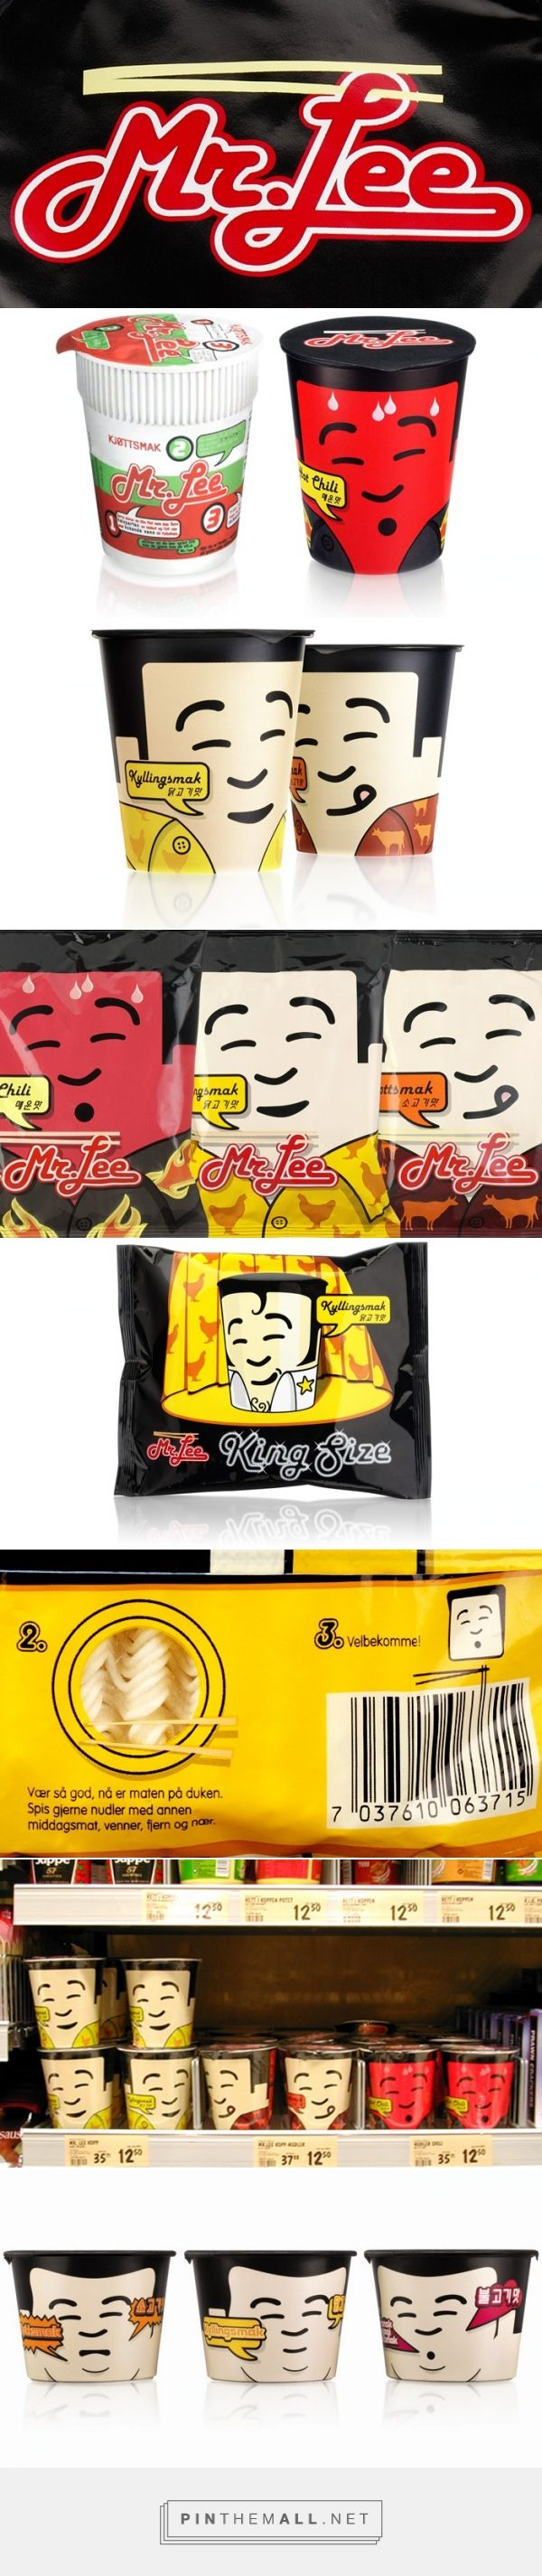 Design Bridge packaging work for Mr Lee before and after curated by Packaging Diva PD